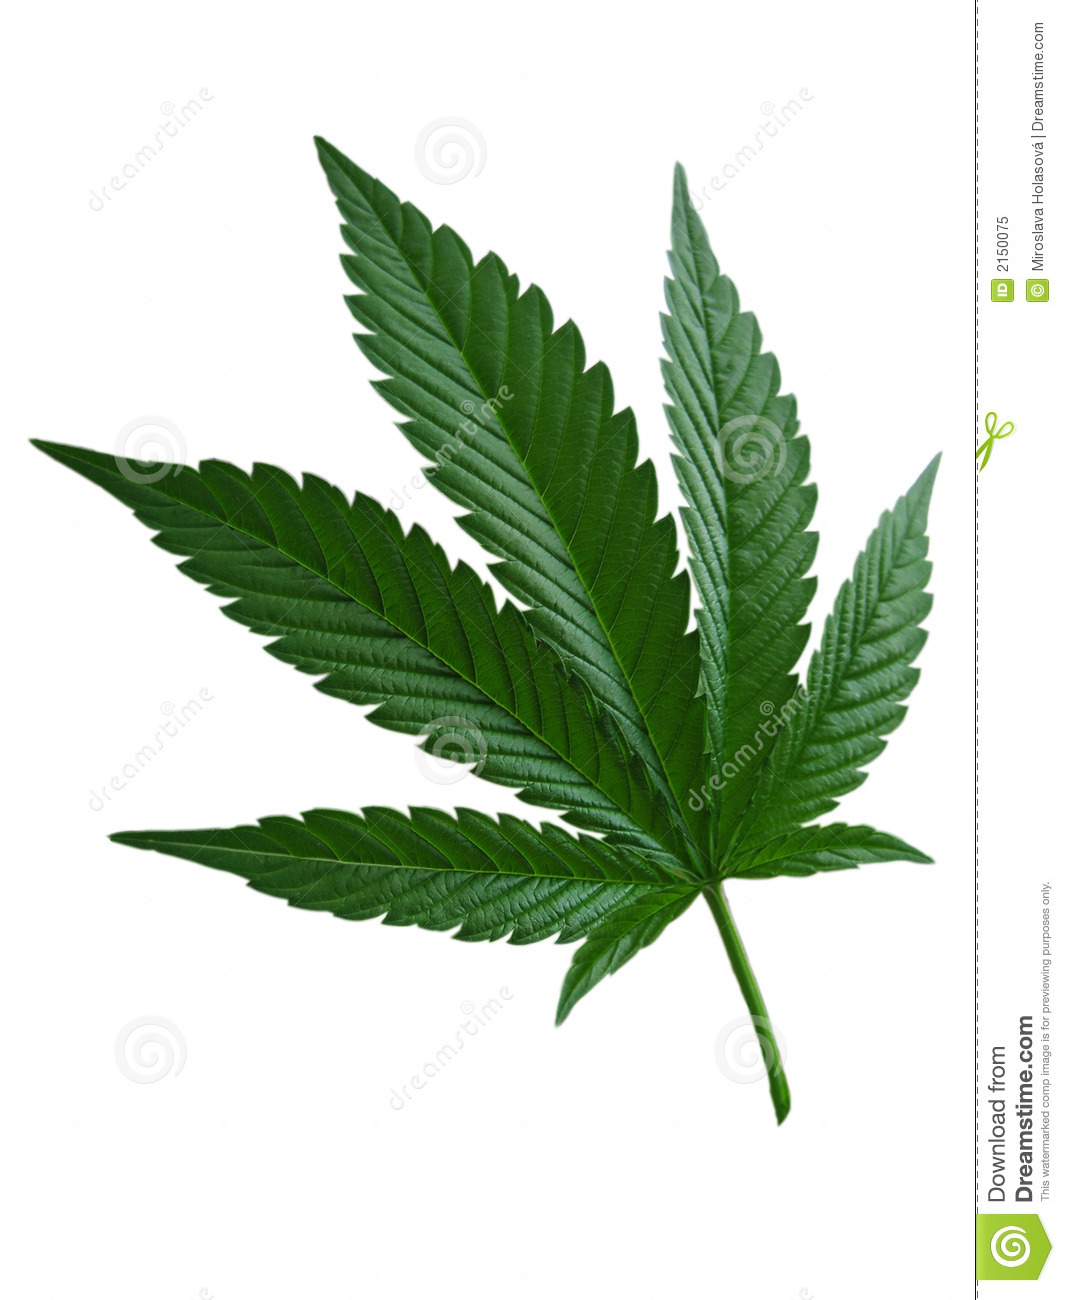 Hemp Leaf Royalty Free Stock Photo Image 2150075